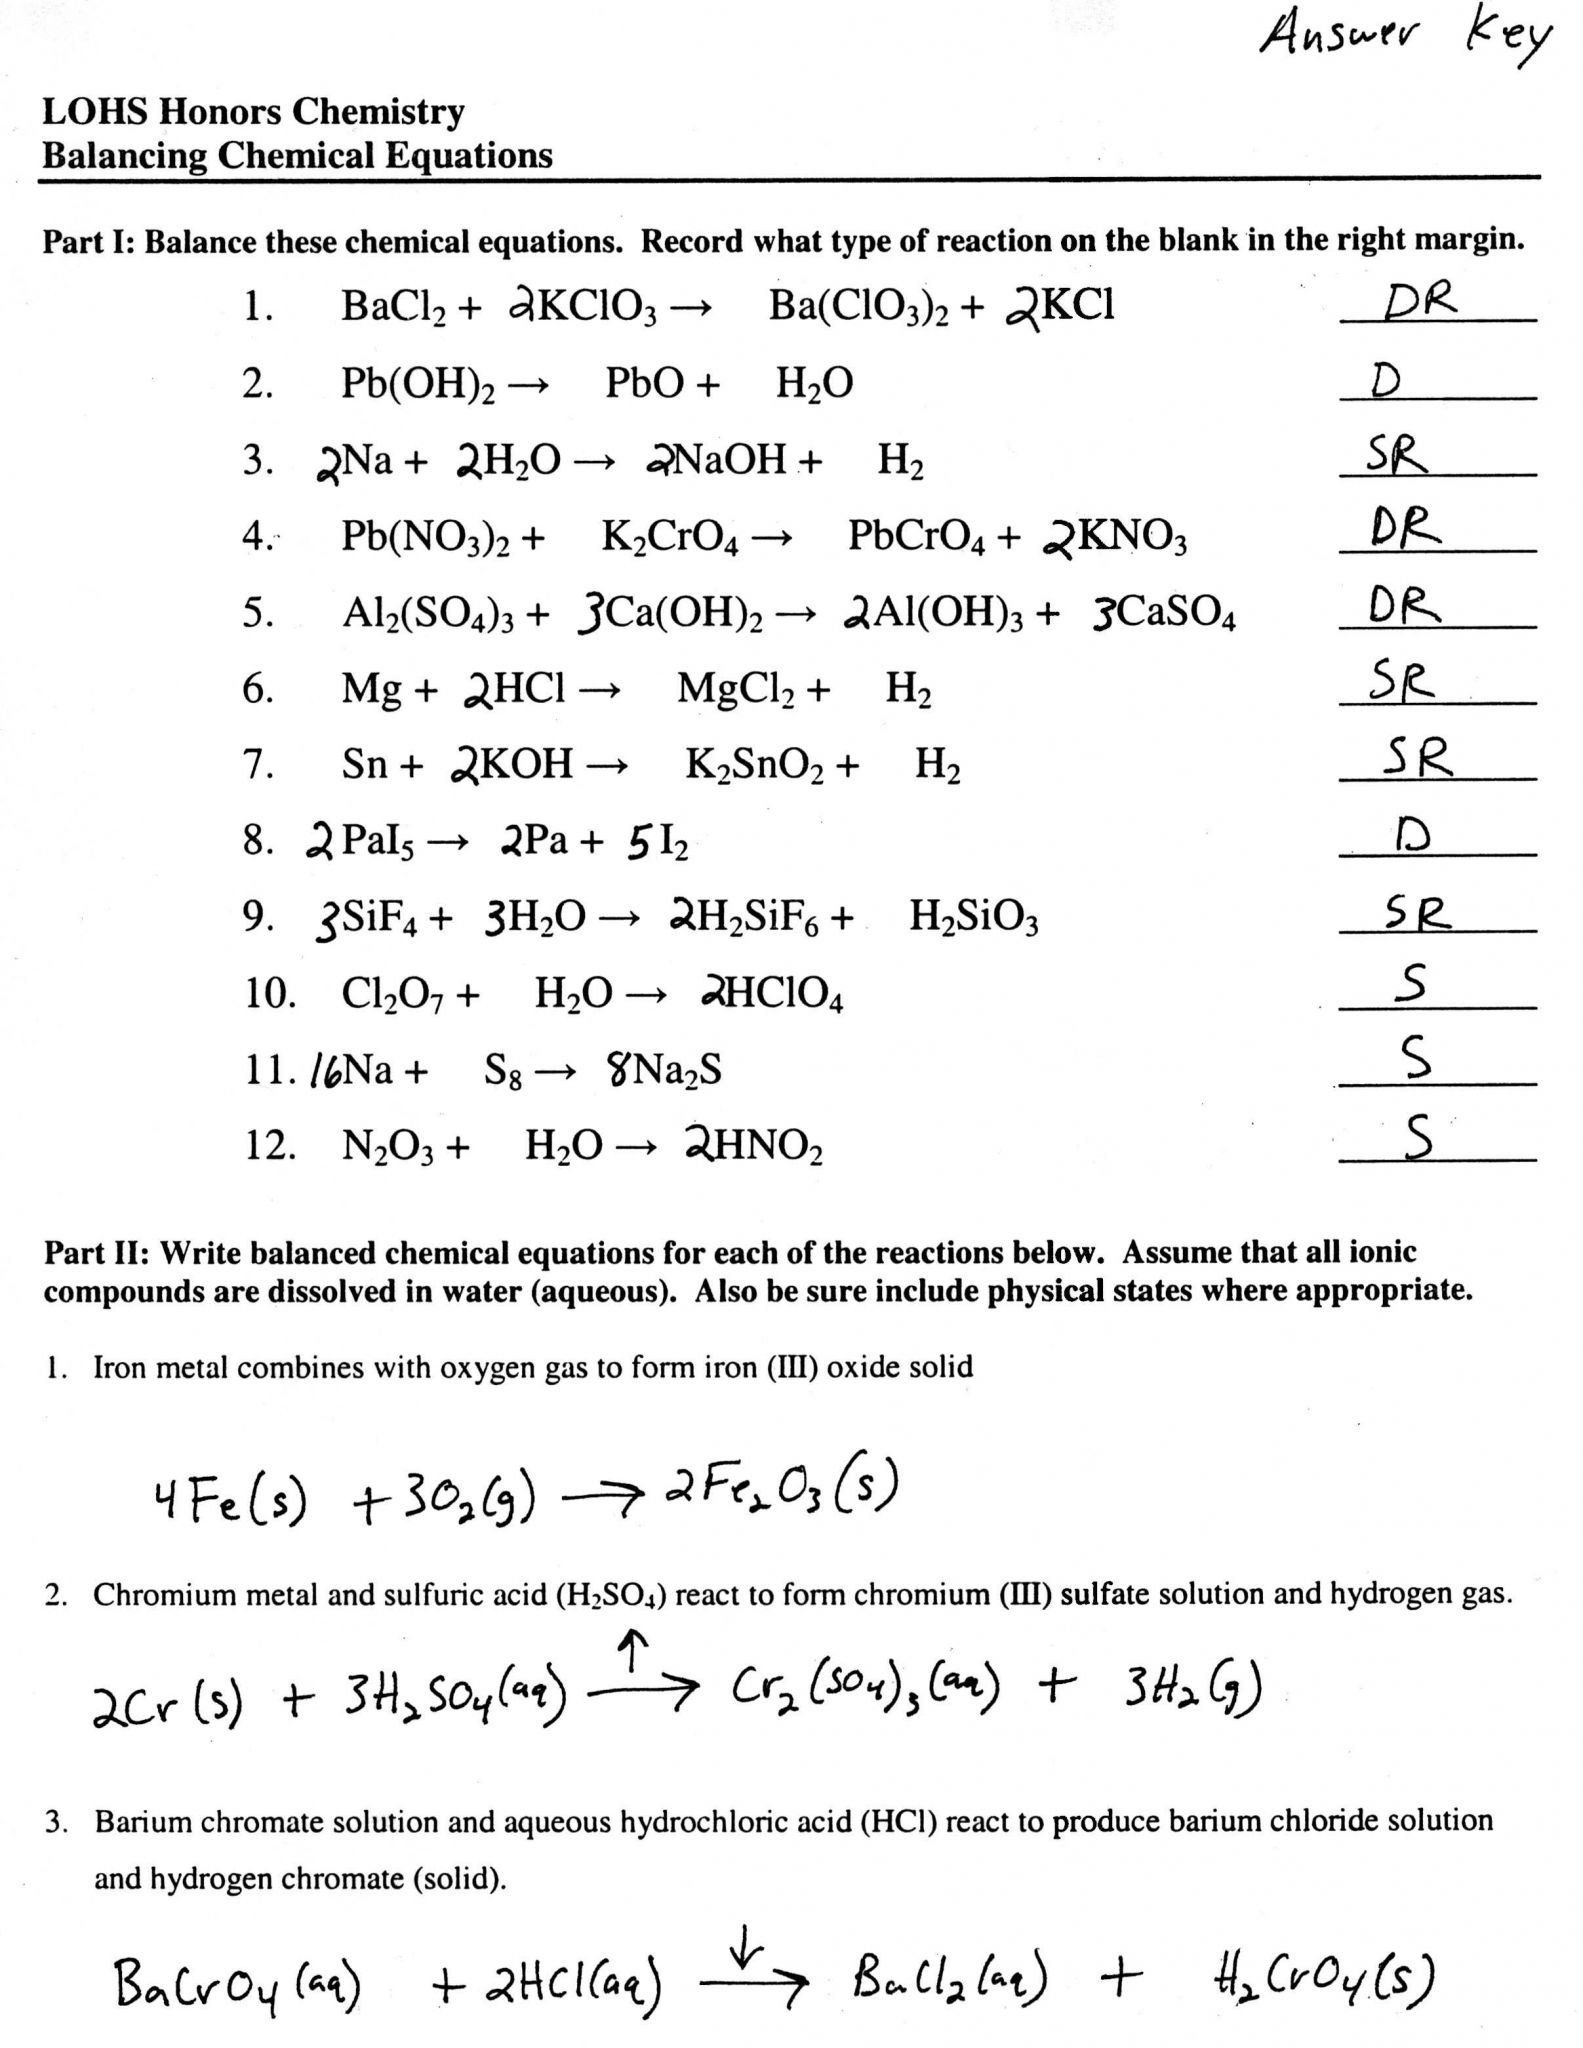 Nuclear Decay Worksheet Answers Key Chemistry Radioactive